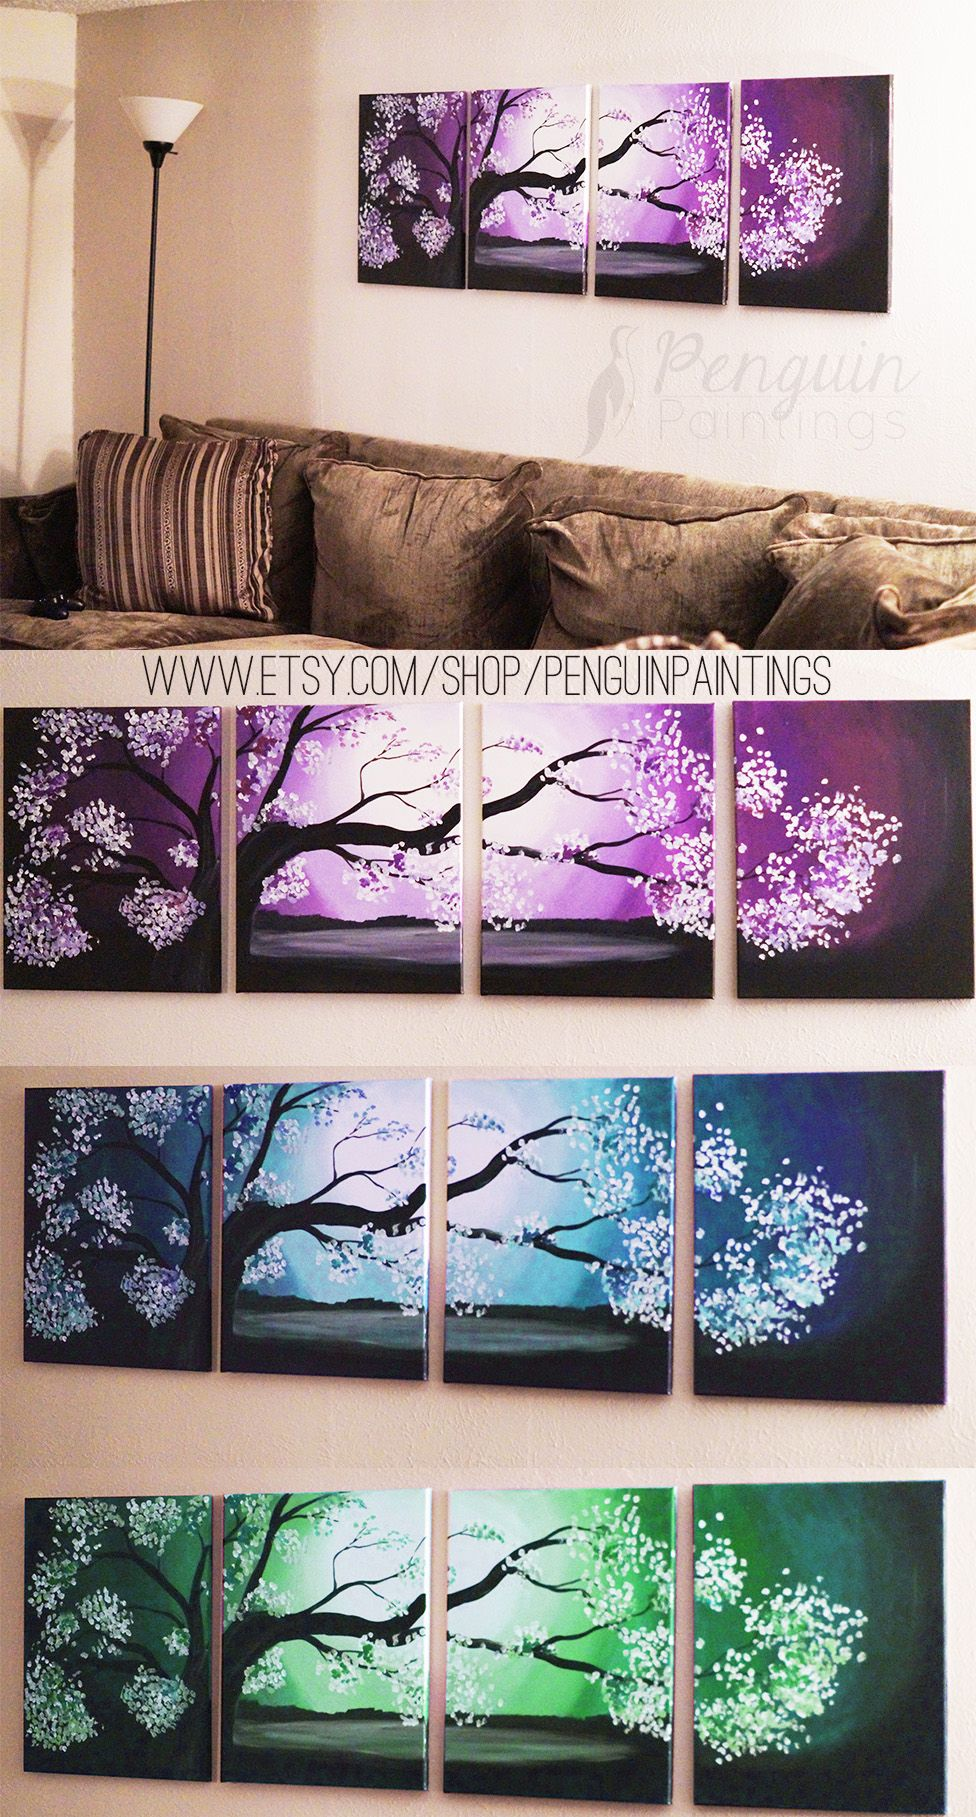 Pretty custom made Japanese tree paintings from Penguin Paintings on Etsy! https://www.etsy.com/listing/262016953/original-painting-purple-japanese-tree?ref=shop_home_active_1